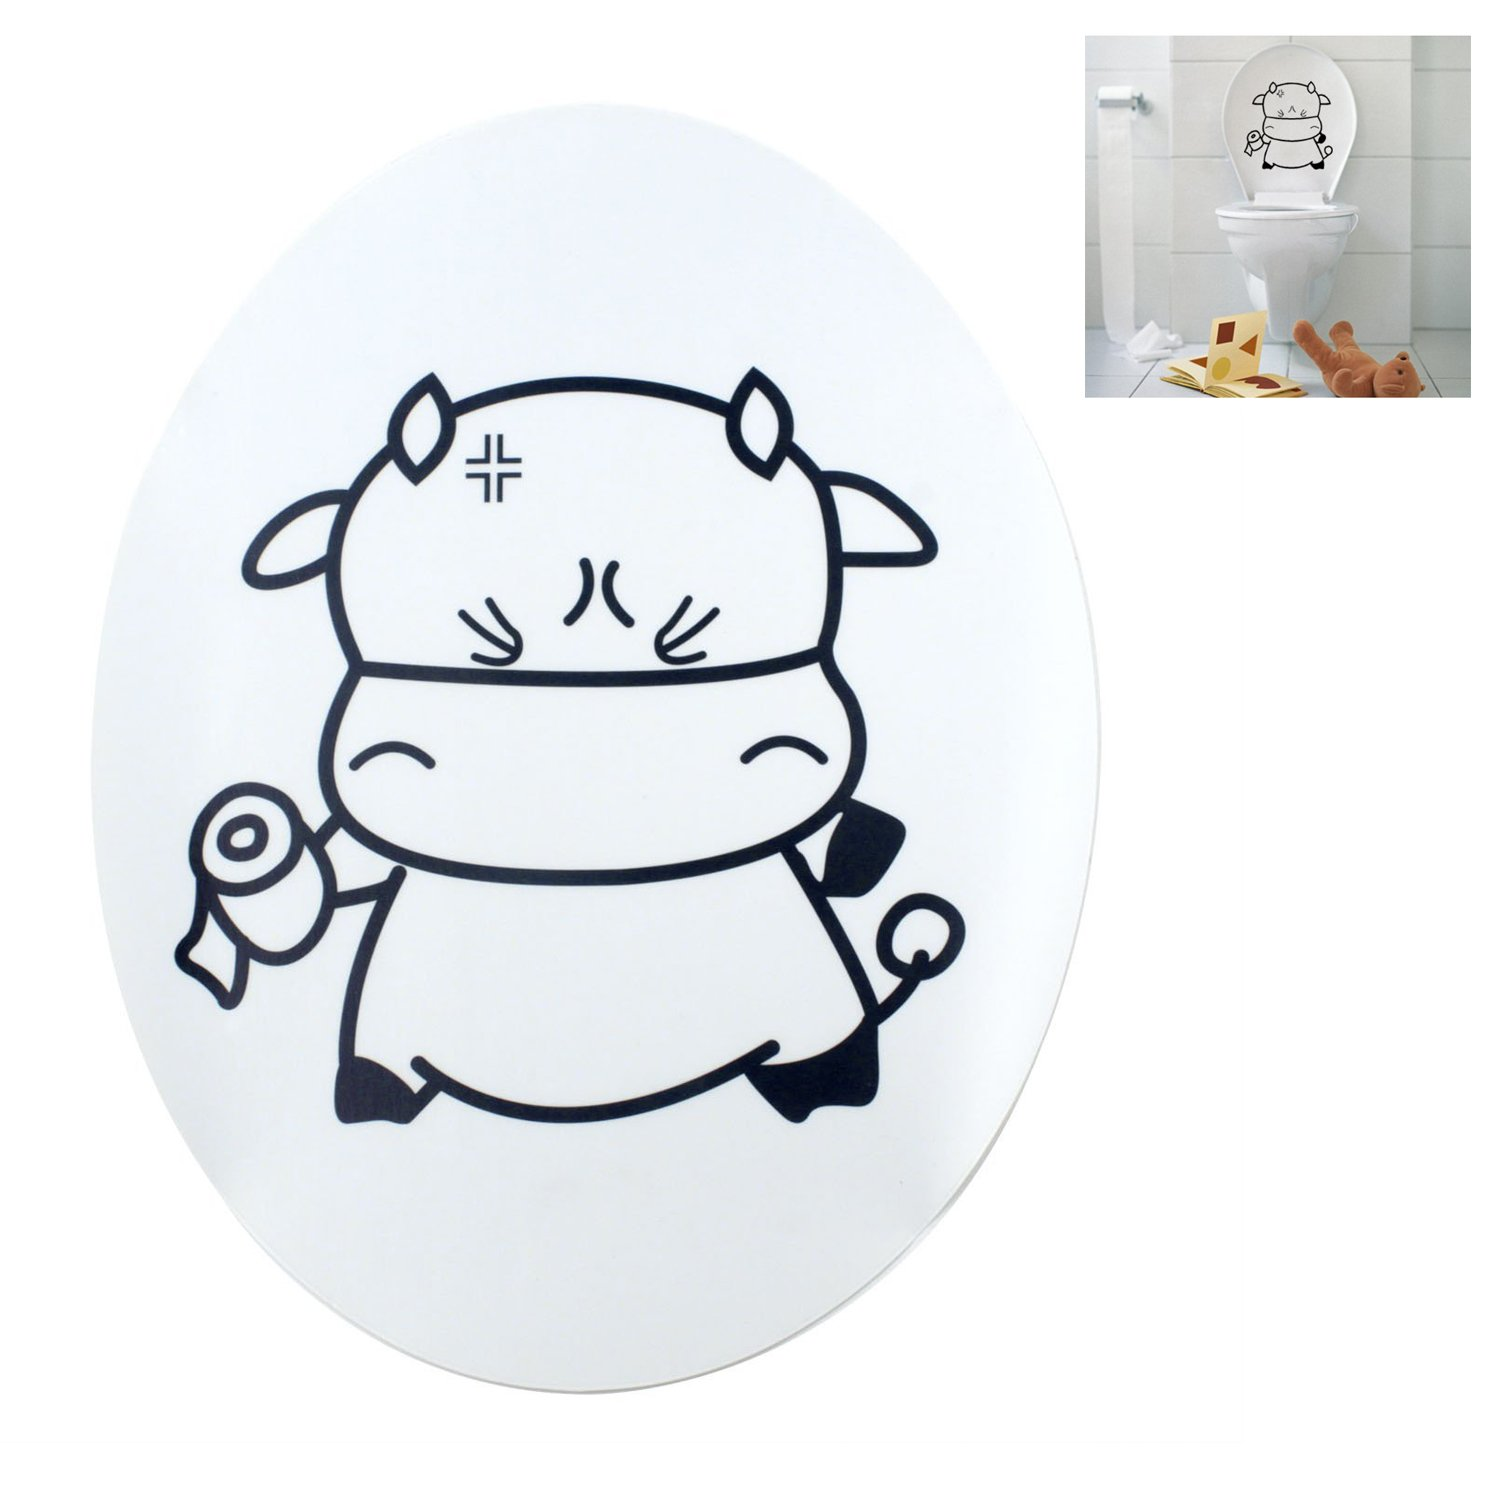 TOOGOO(R) Sweet Cow Toilet Seat Cover Decal Sticker by TOOGOO(R) (Image #3)